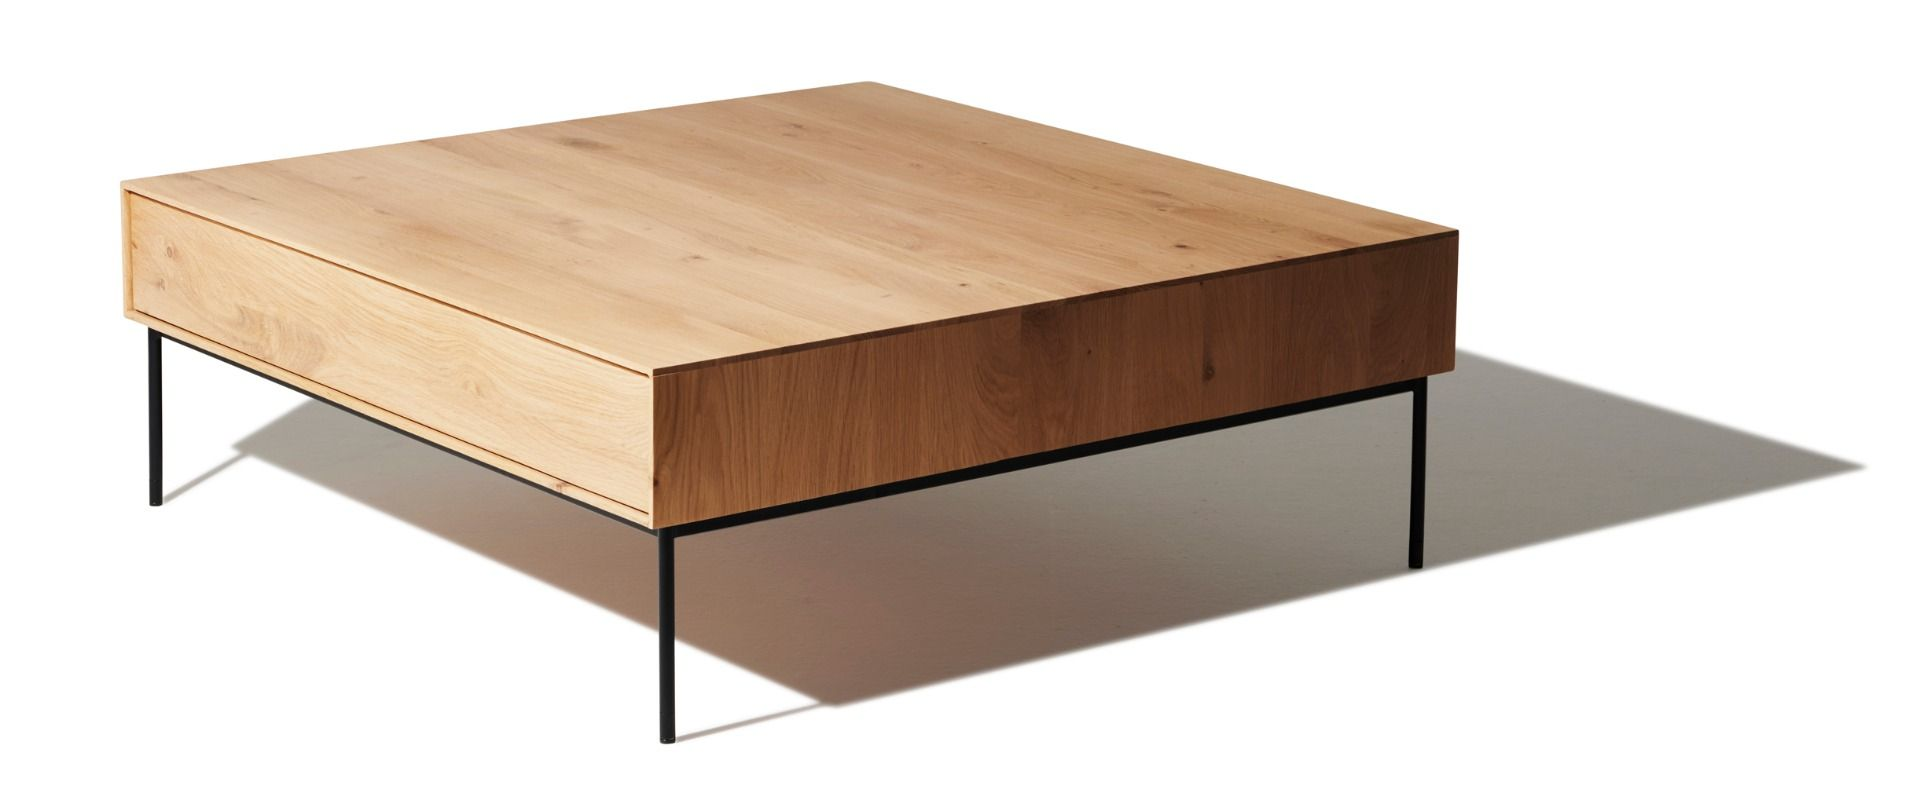 Whitebird Coffee Table Large Large Coffee Tables Table Solid Oak